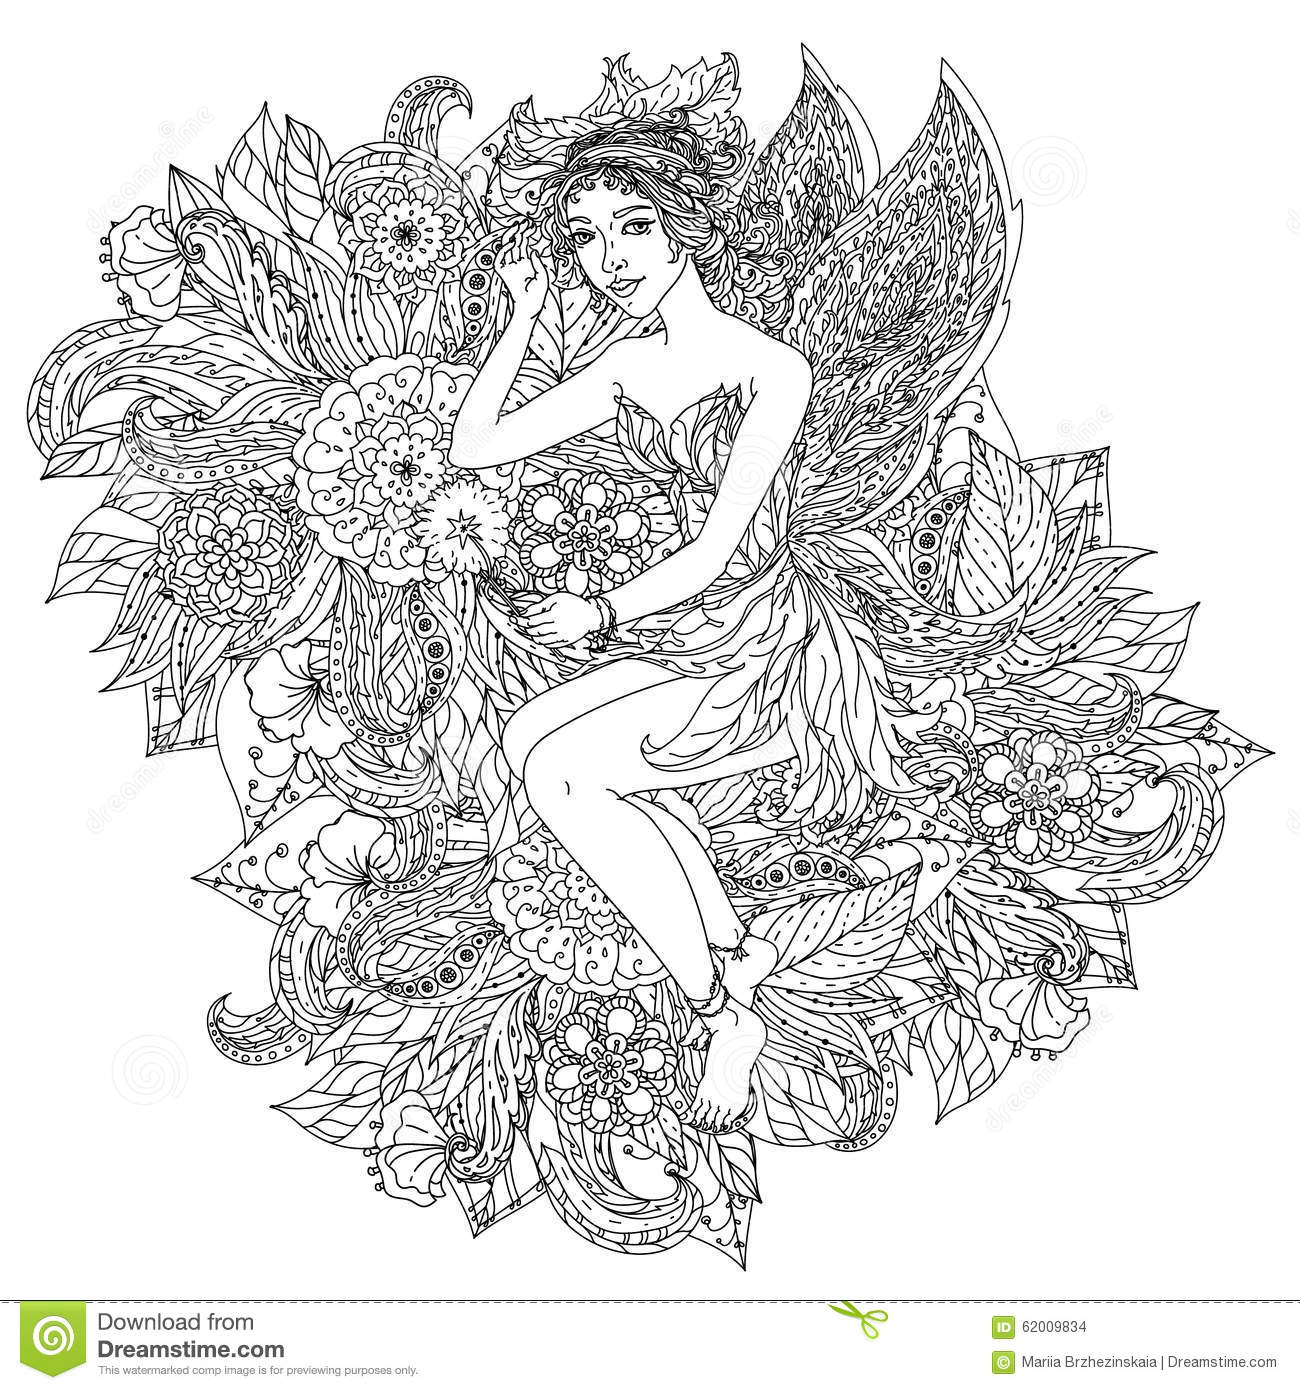 Fairy or elf stock vector. Image of graphic, abstract